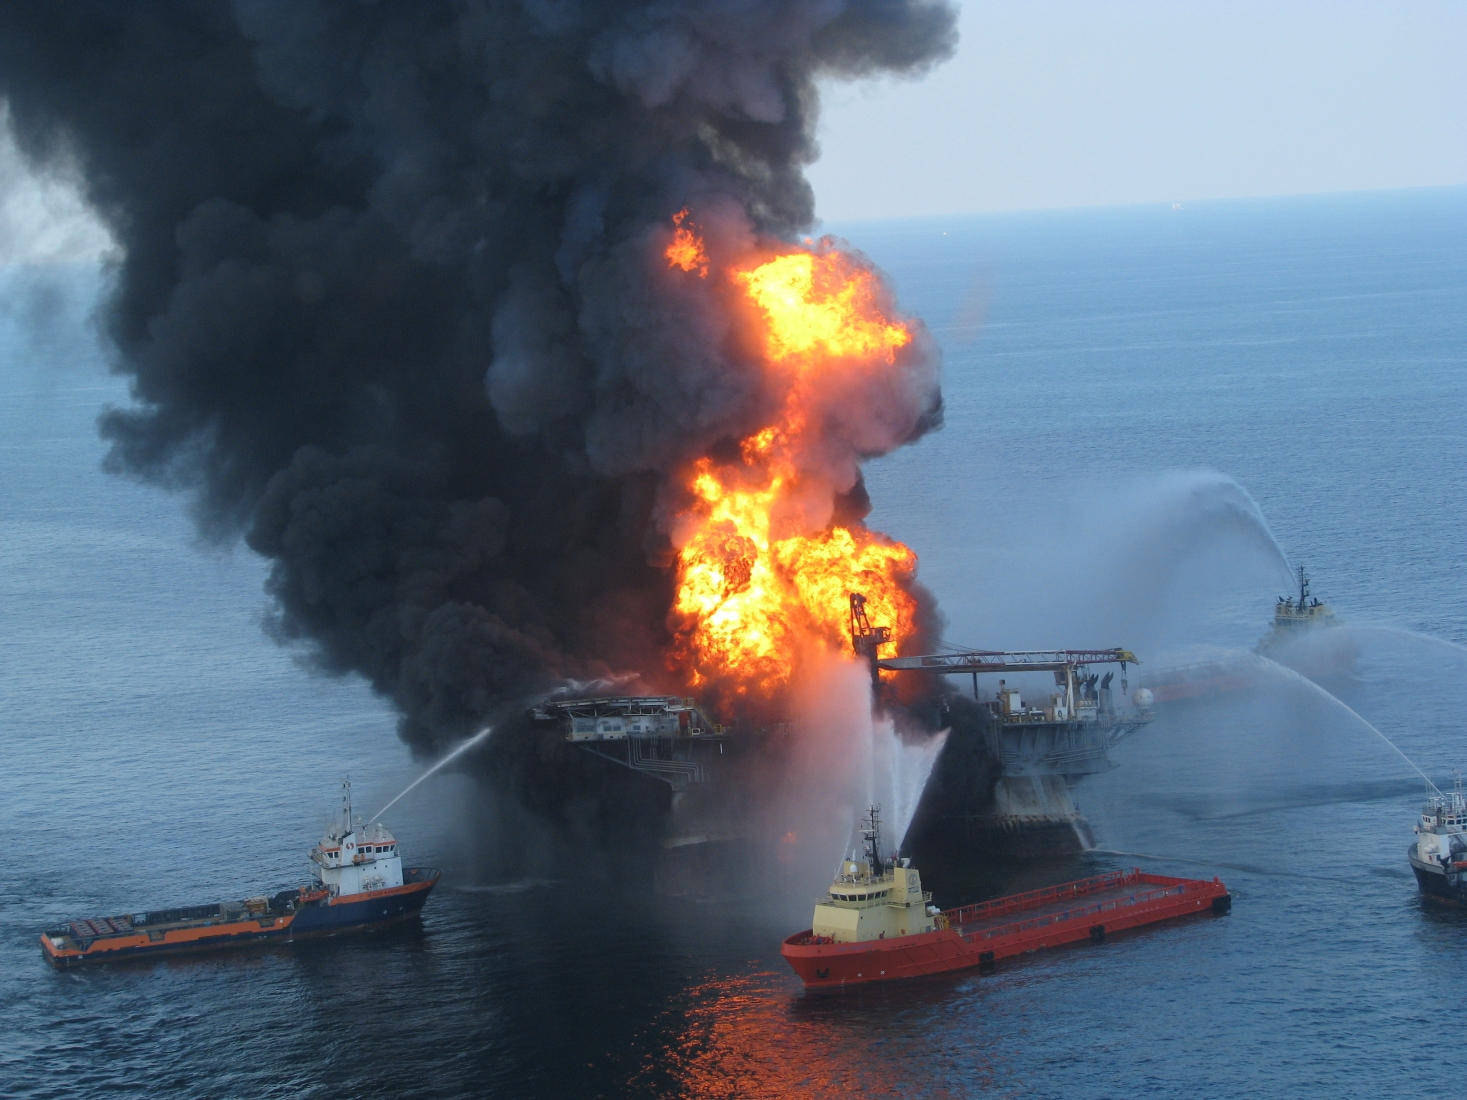 Several vessels pump pressurized water at a fire on an oil rig.